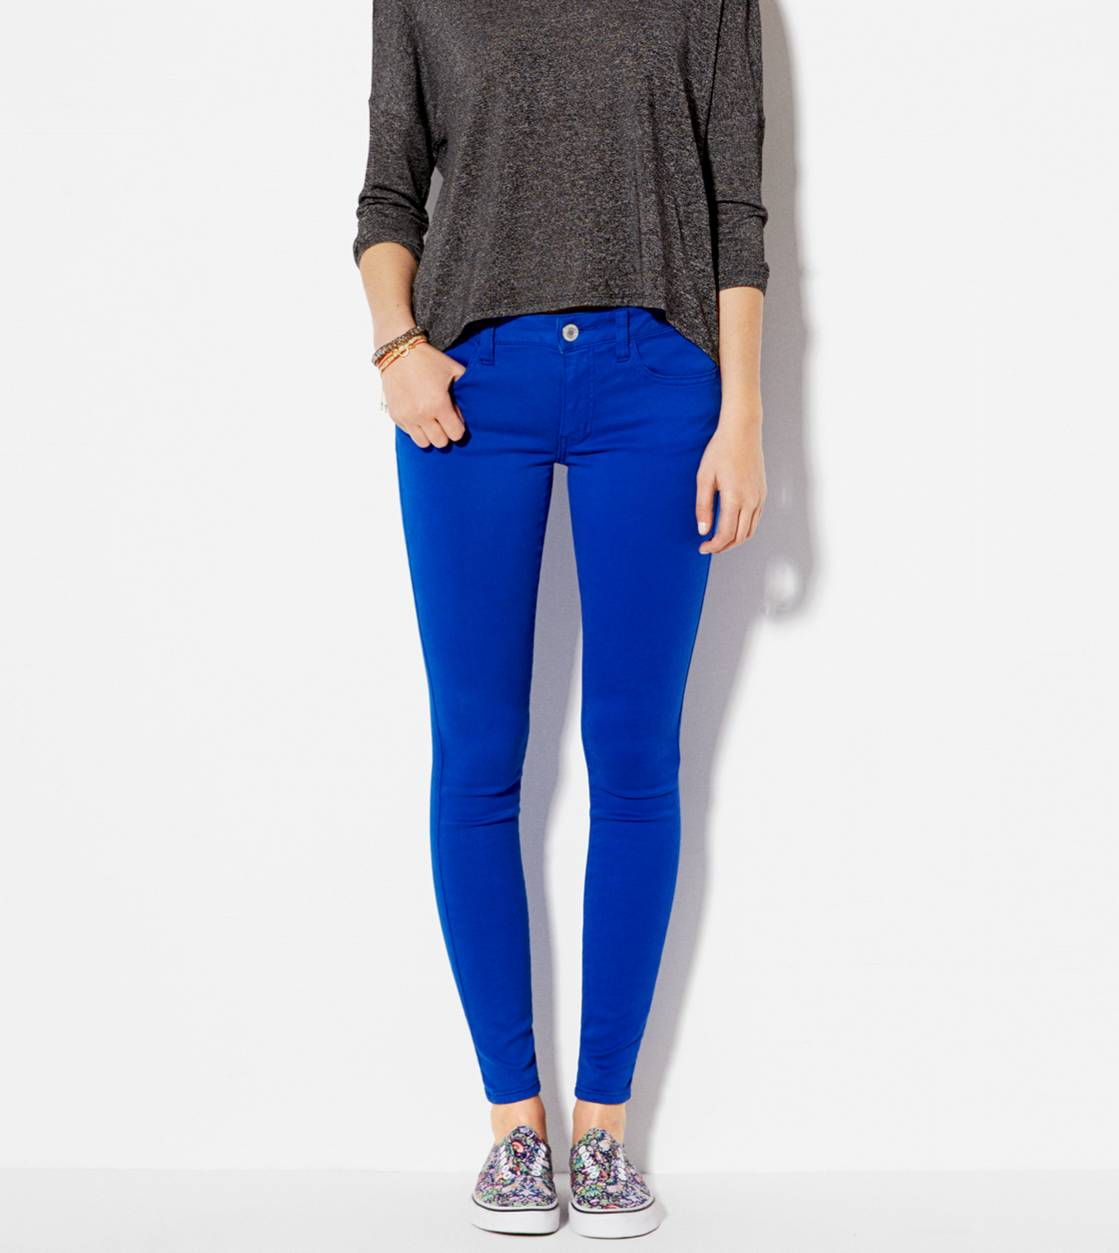 Blue Freedom Jegging Pant